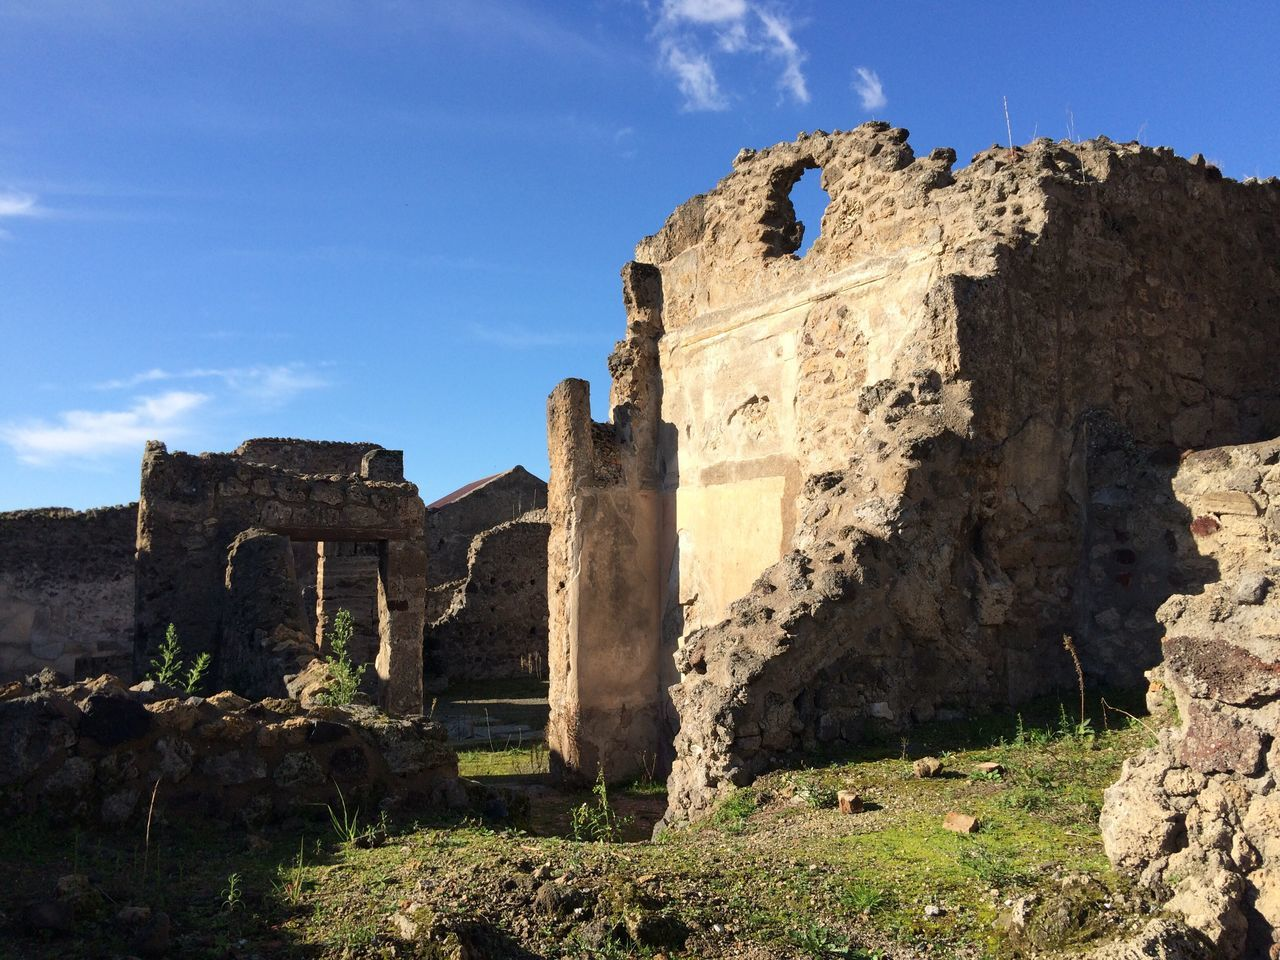 old ruin, history, ancient, the past, damaged, architecture, ancient civilization, archaeology, built structure, day, abandoned, bad condition, sunlight, sky, no people, outdoors